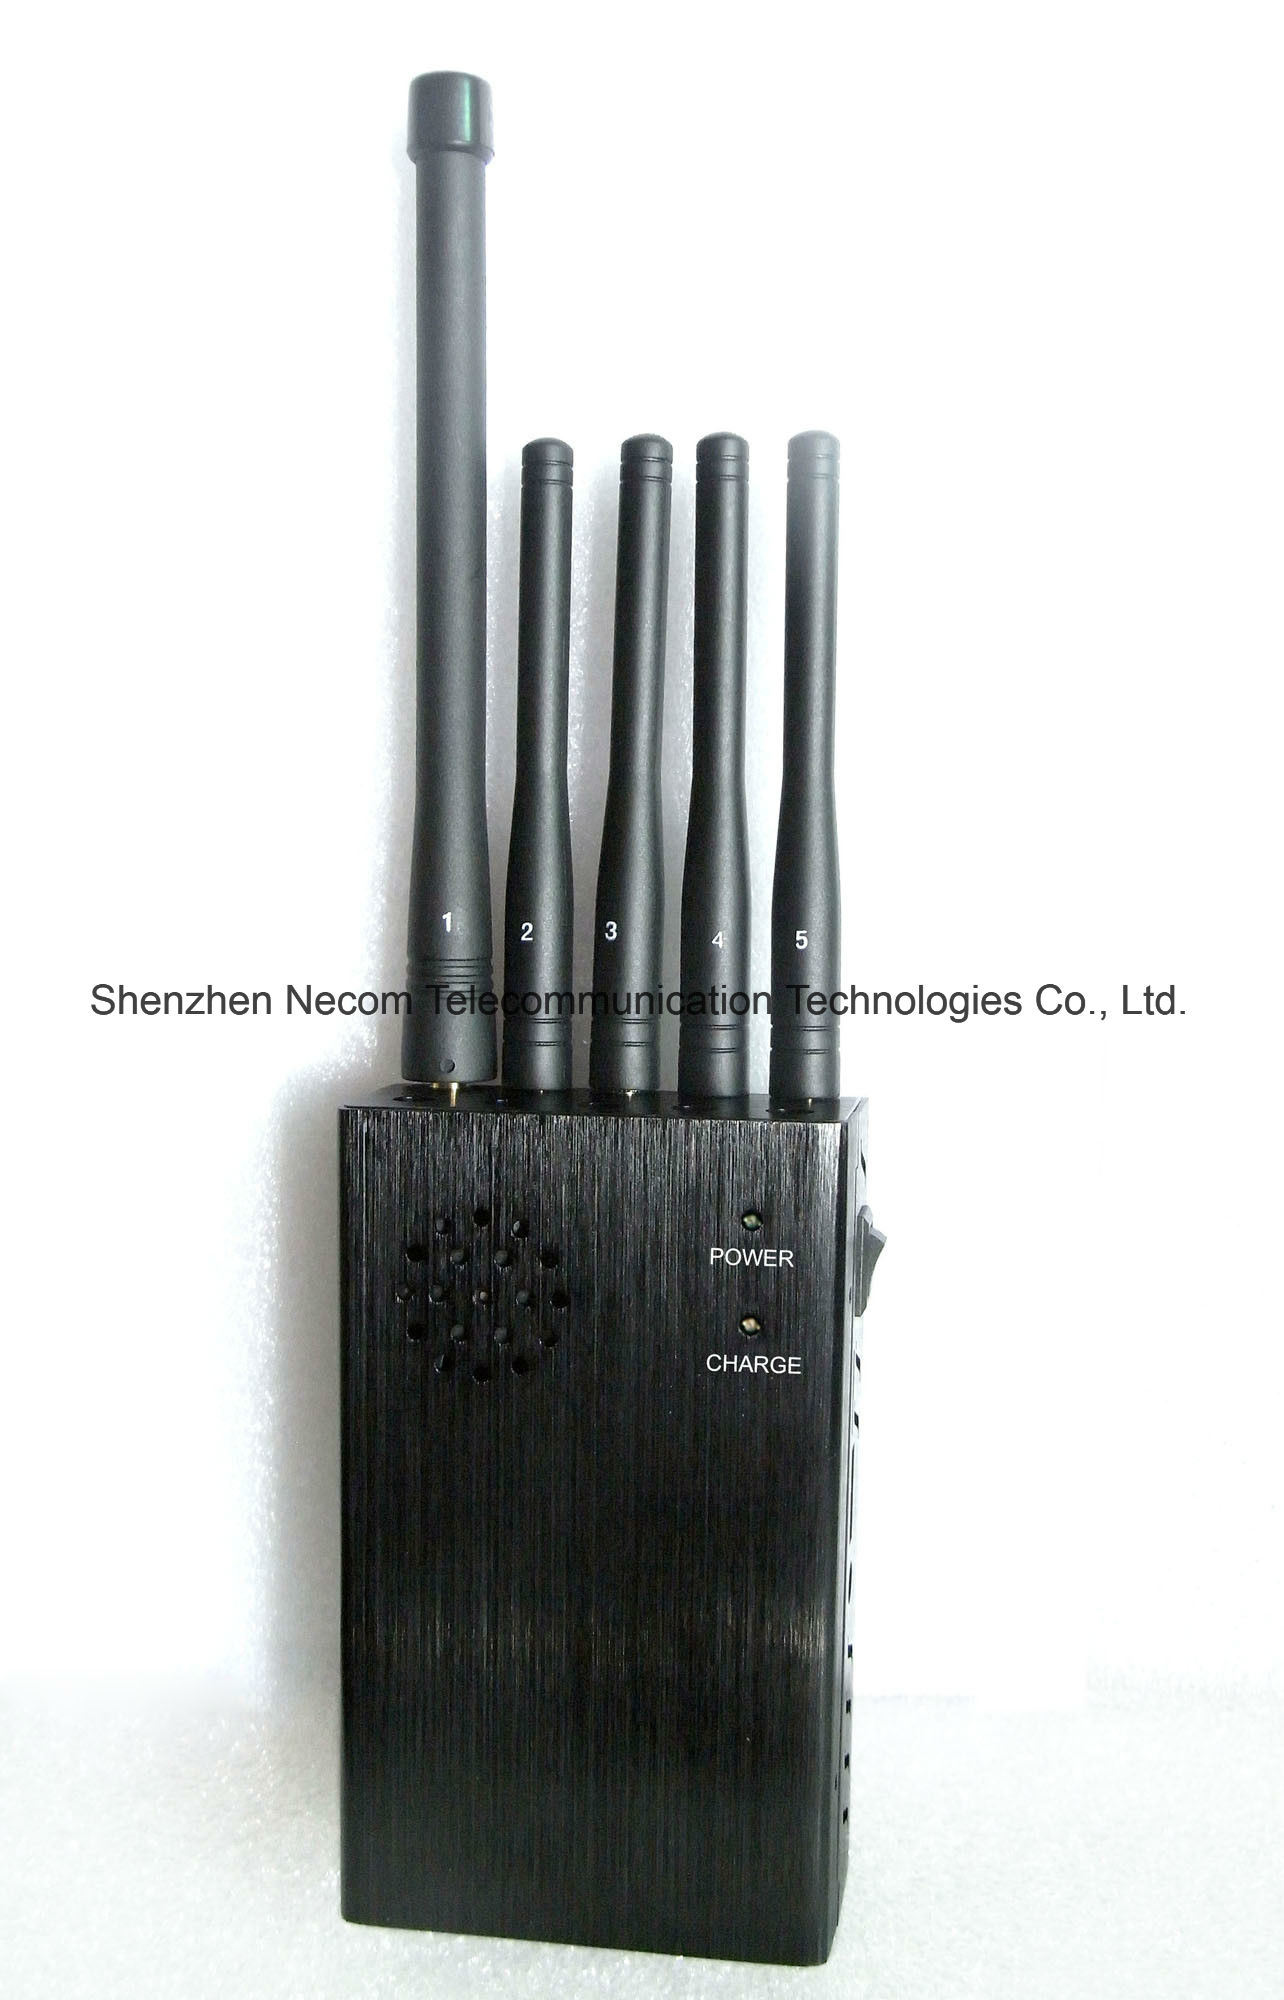 China 5 Antennas Handheld WiFi GPS Cell Phone Jammer, 5-Band Portable WiFi Bluetooth Wireless Video Cell Phone Jammer - China Portable Cellphone Jammer, GSM Jammer